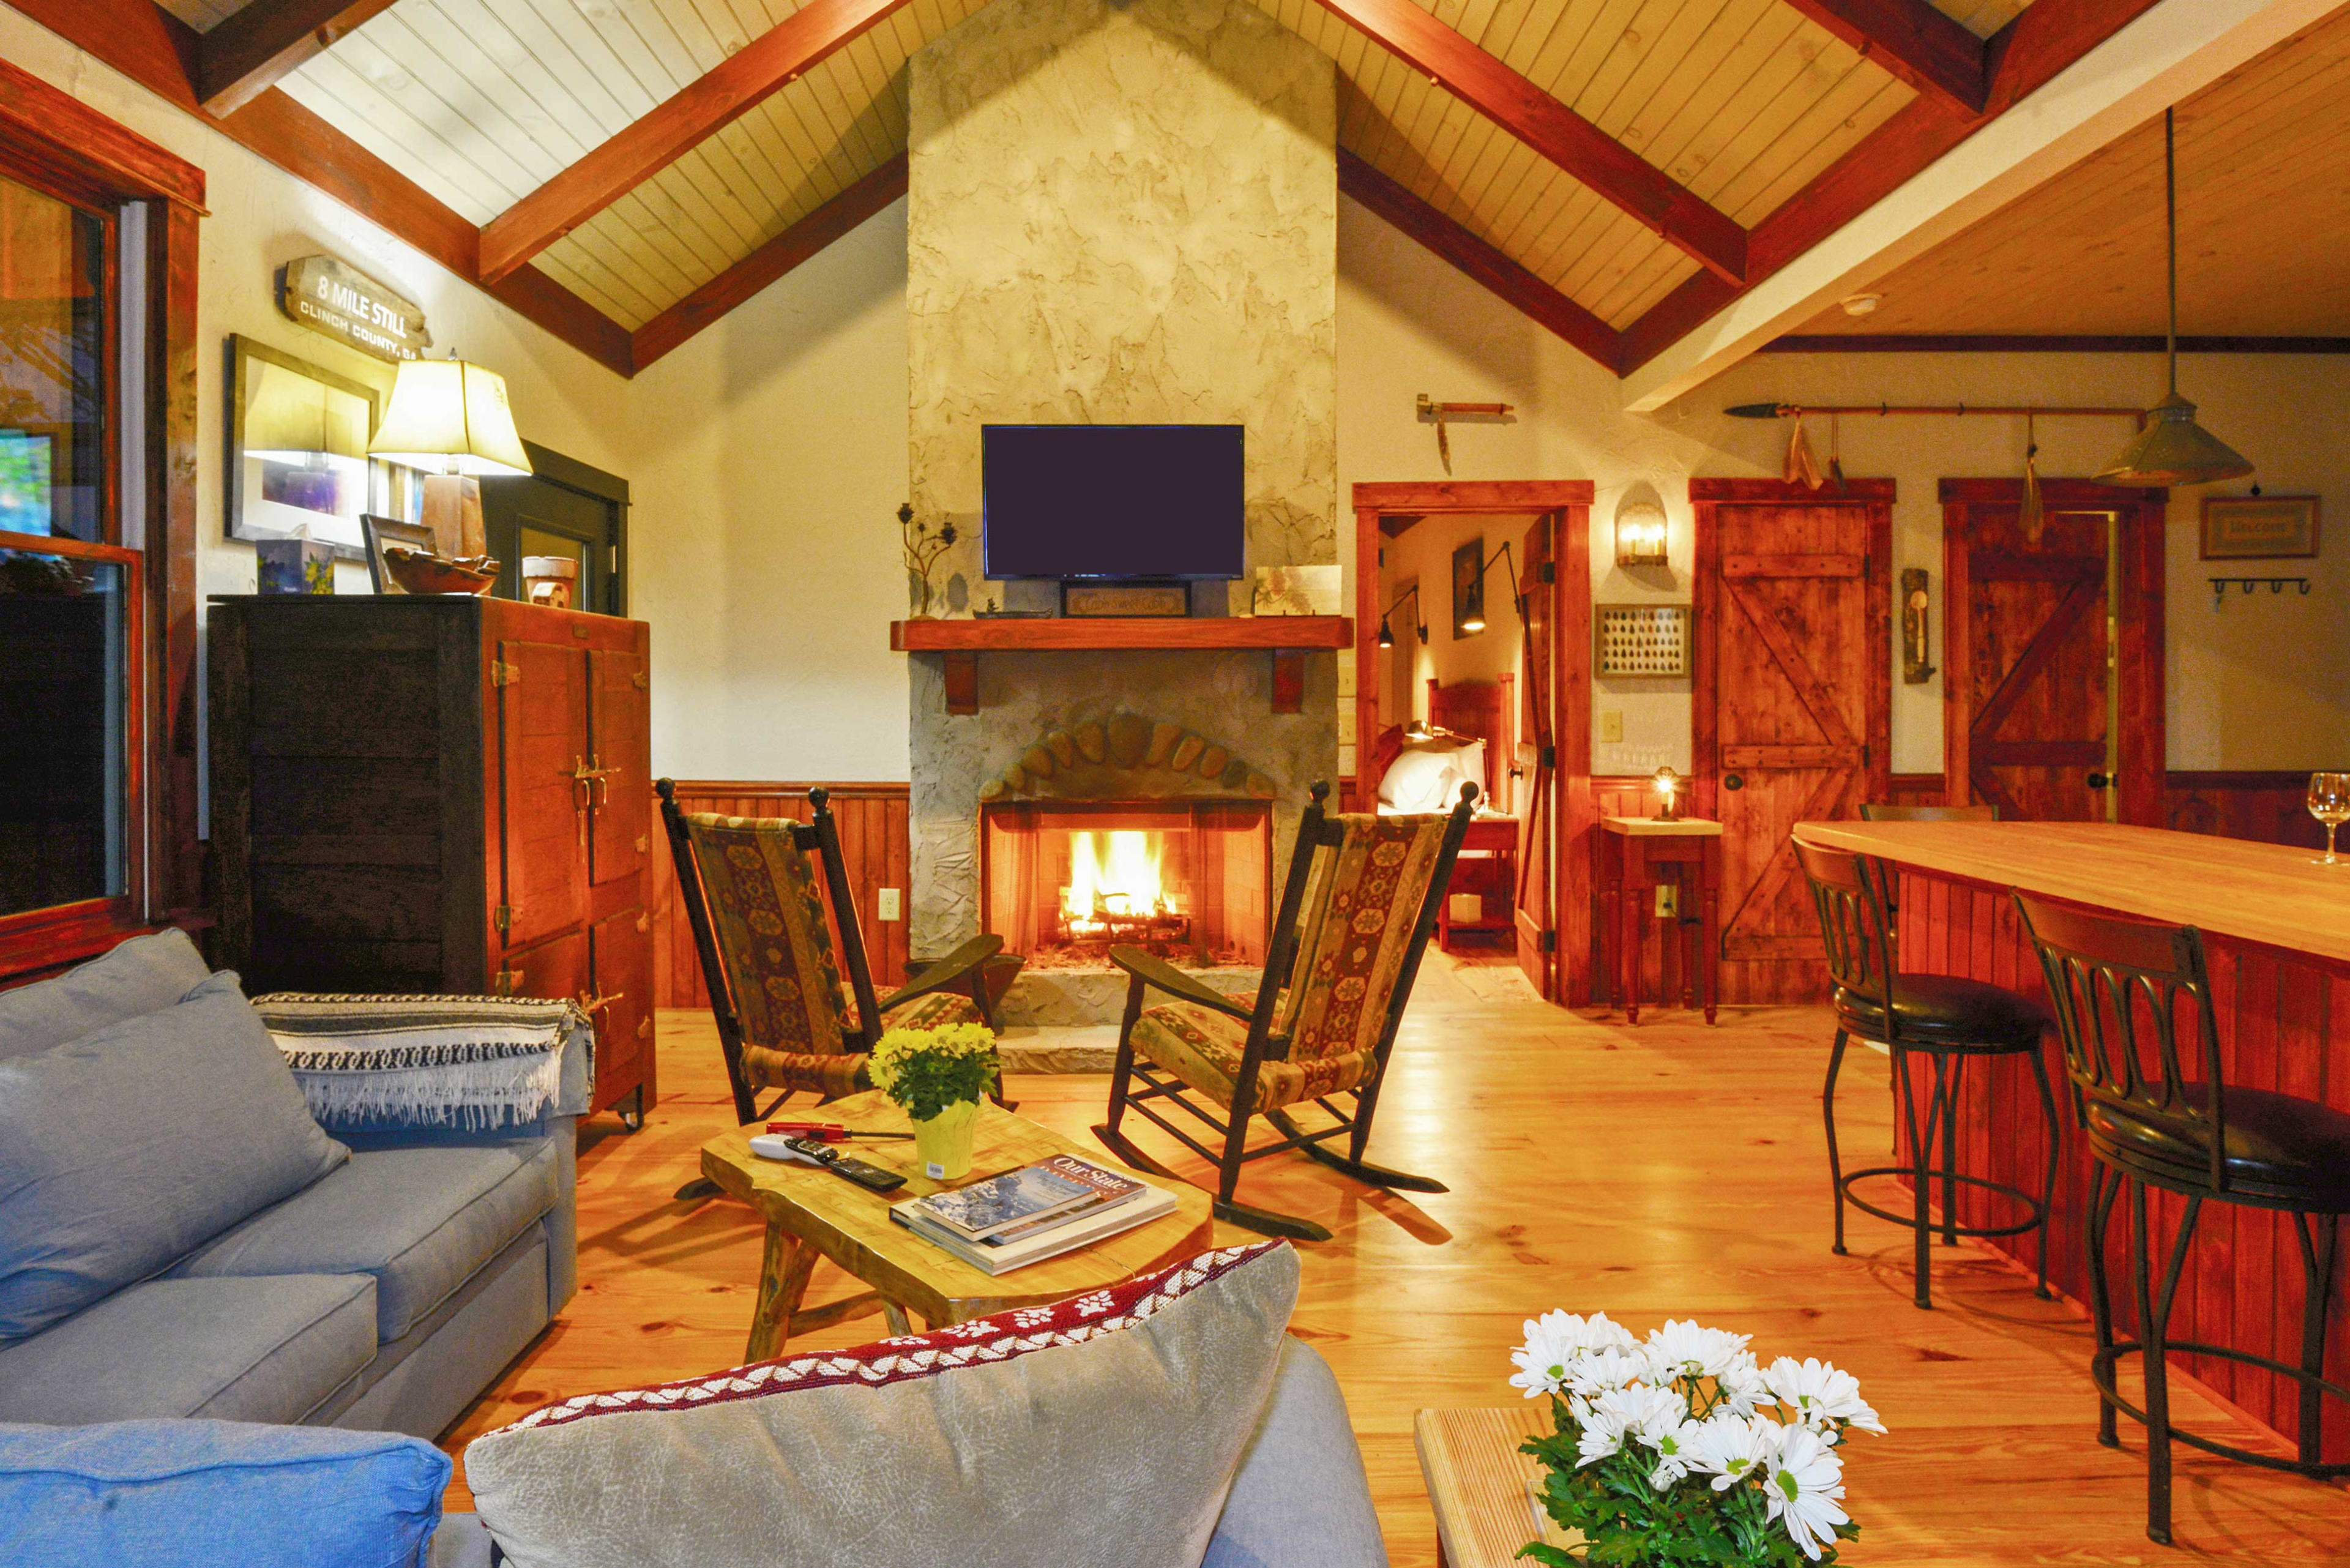 Plenty of seating in the cozy living room.